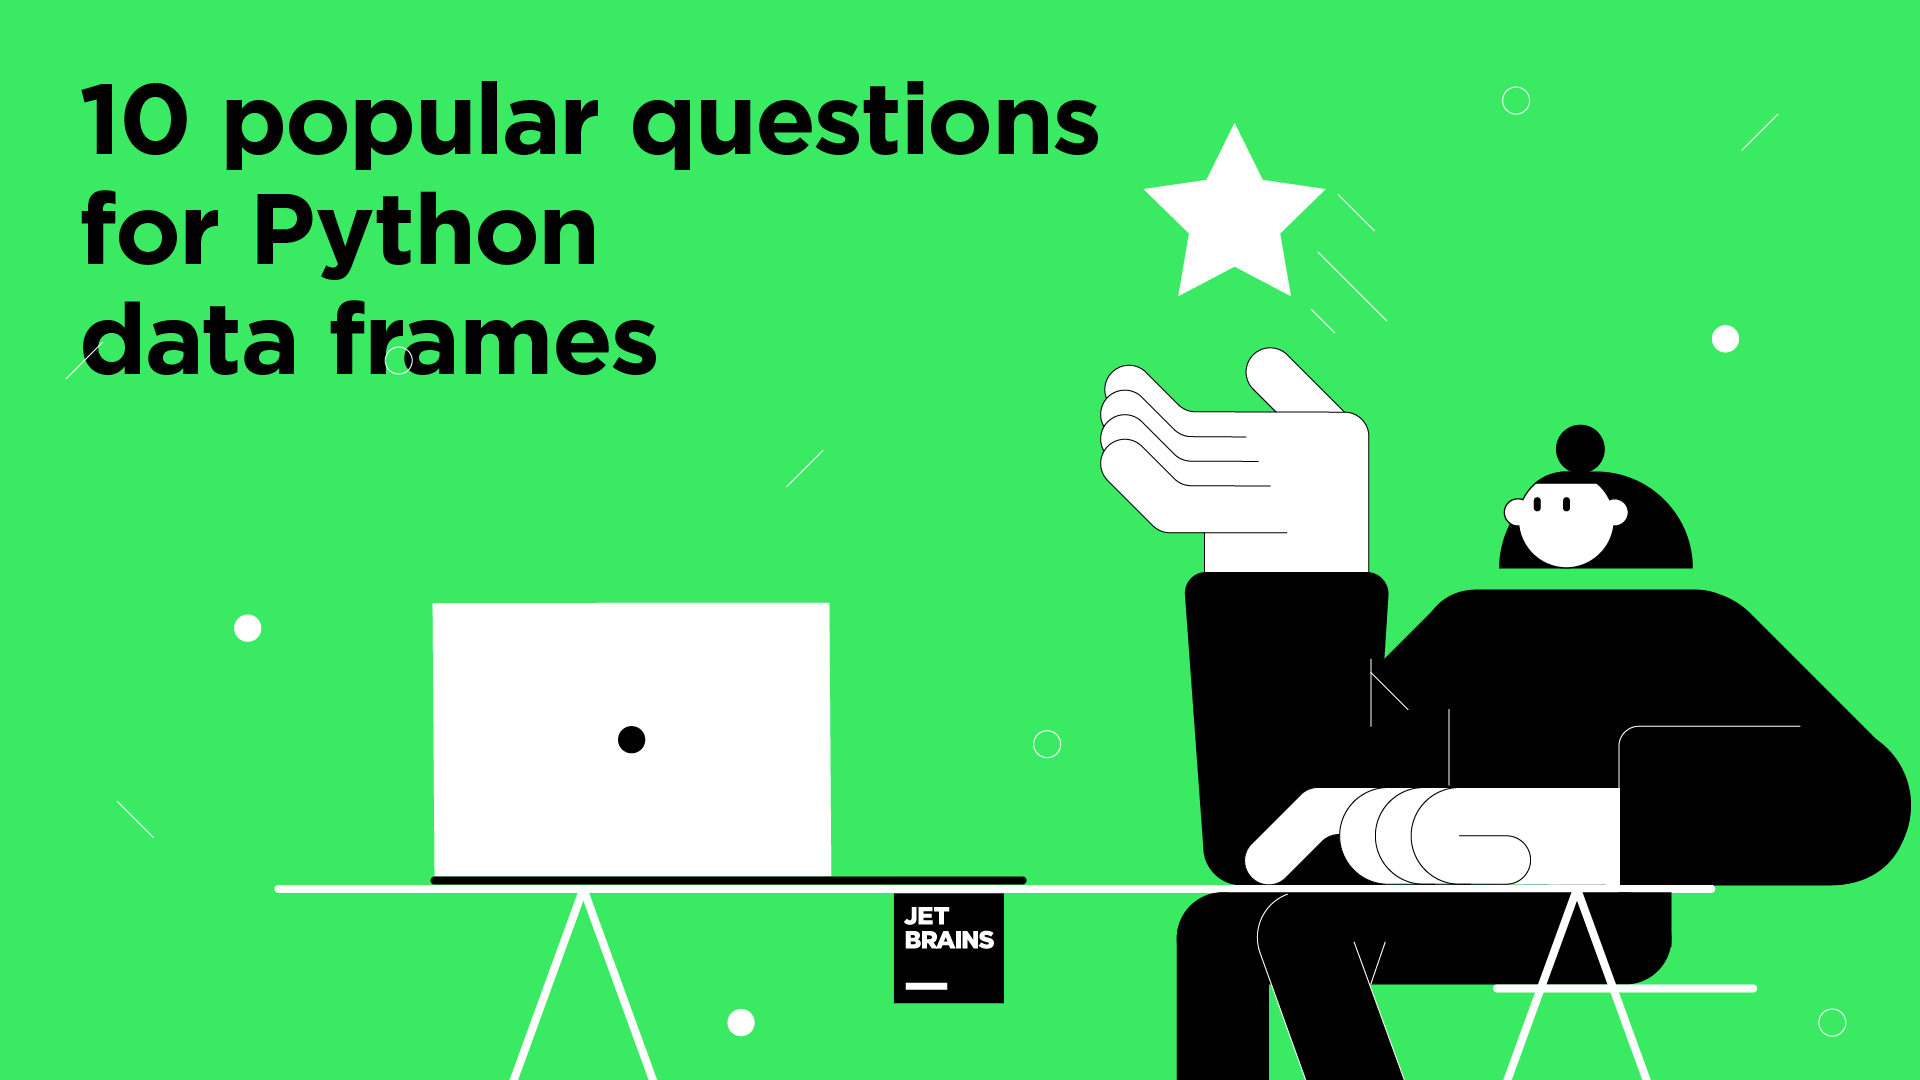 Pandas Tutorial: 10 popular questions for Python data frames